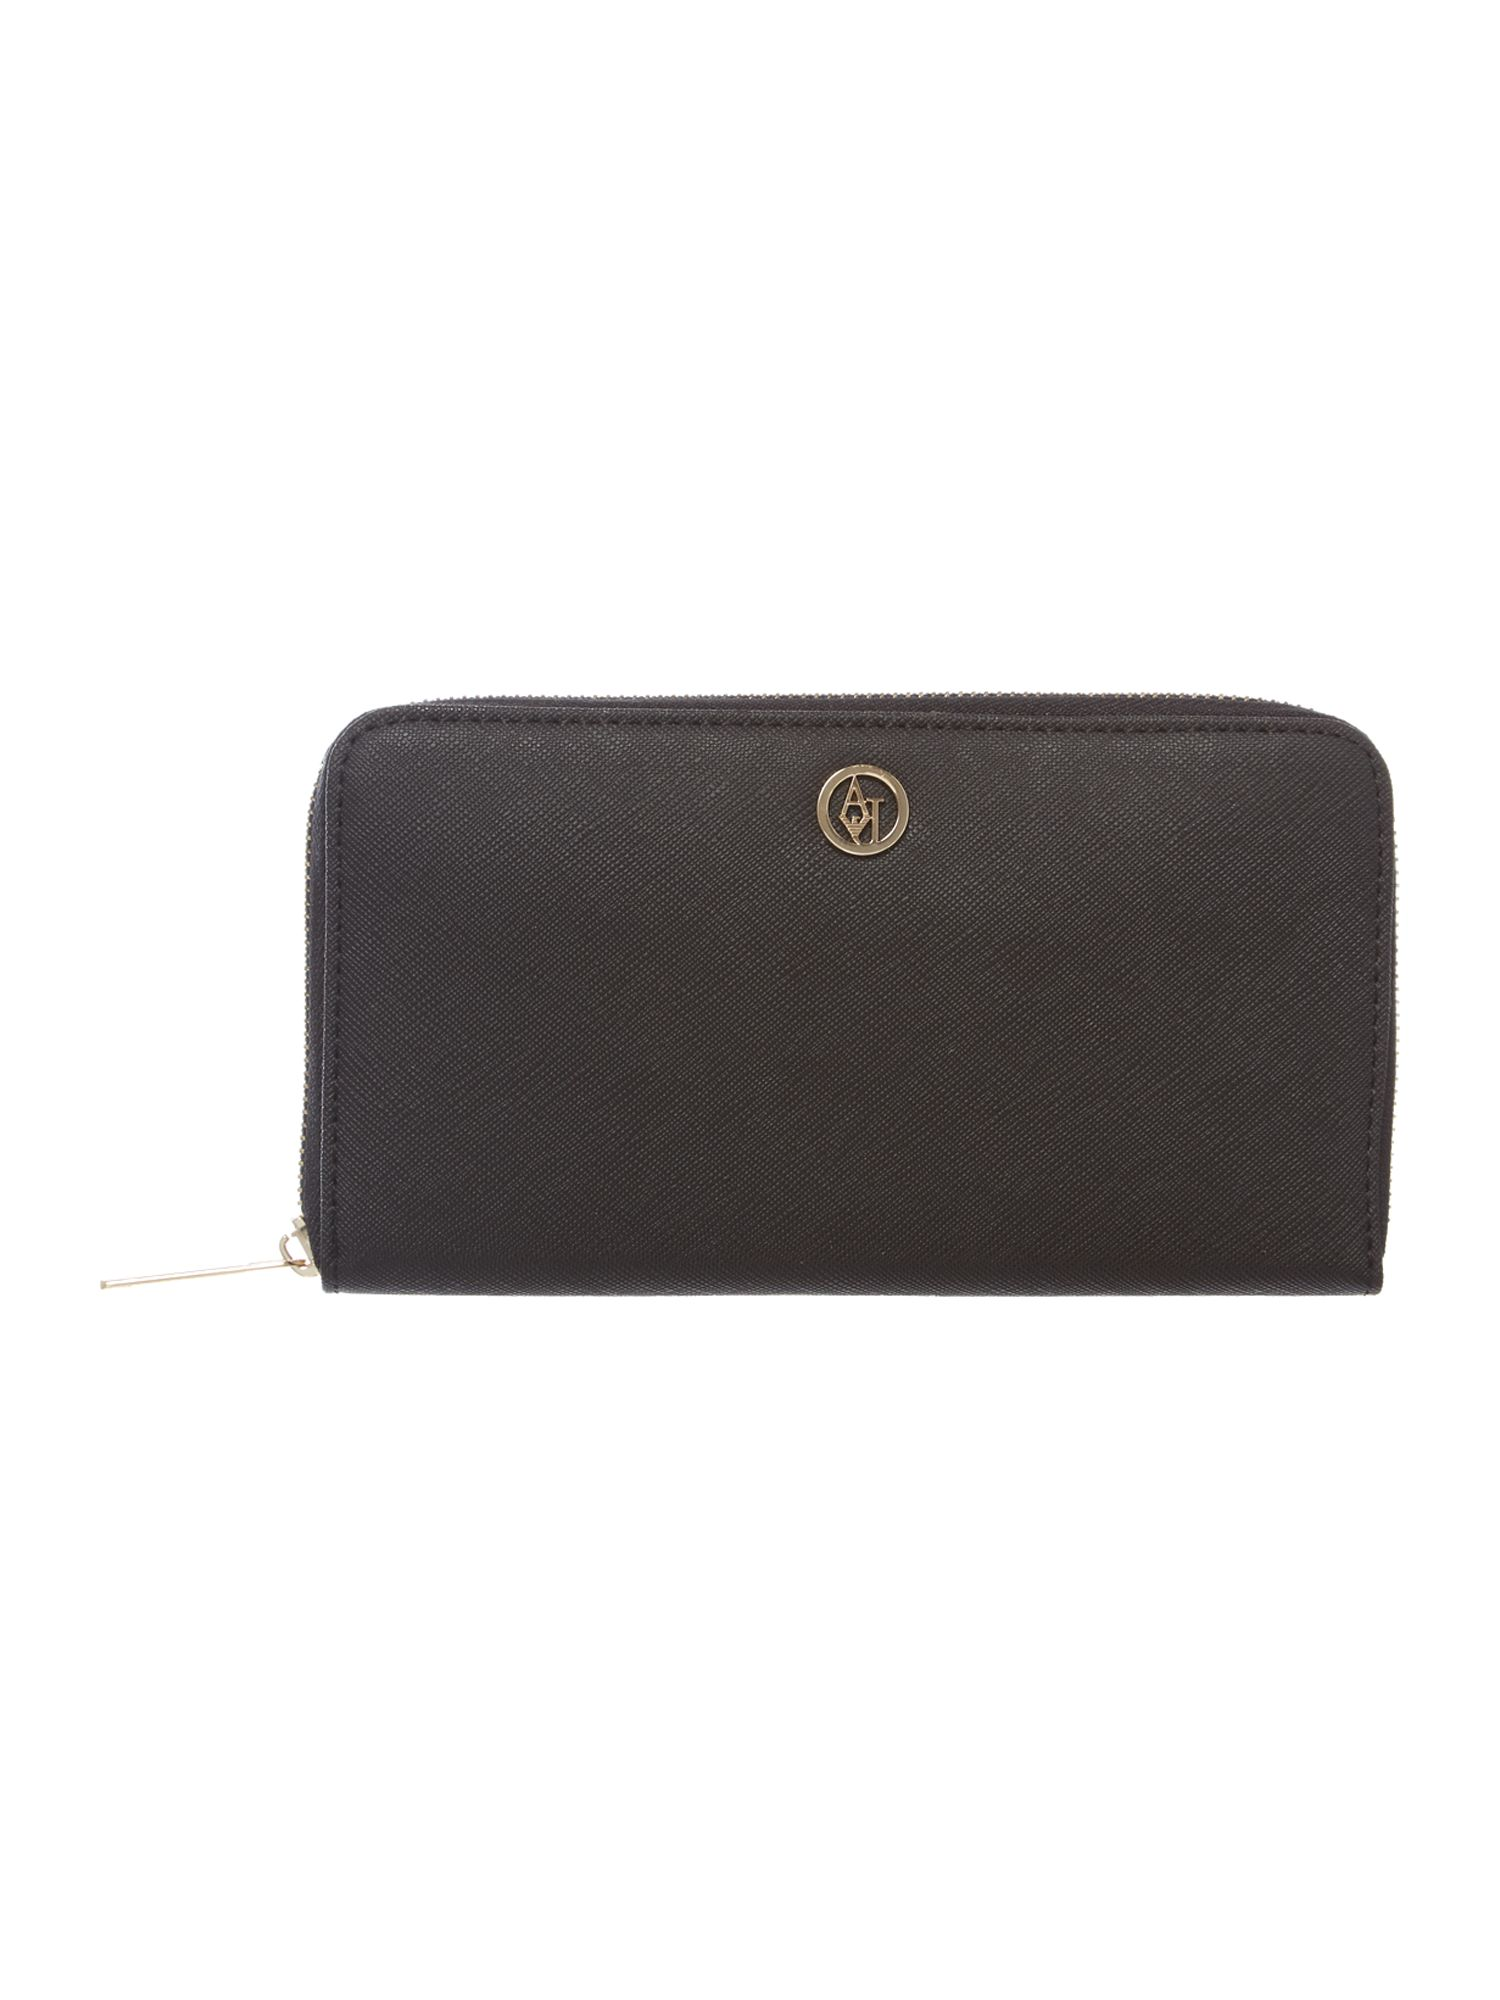 Black saffiano large ziparound purse